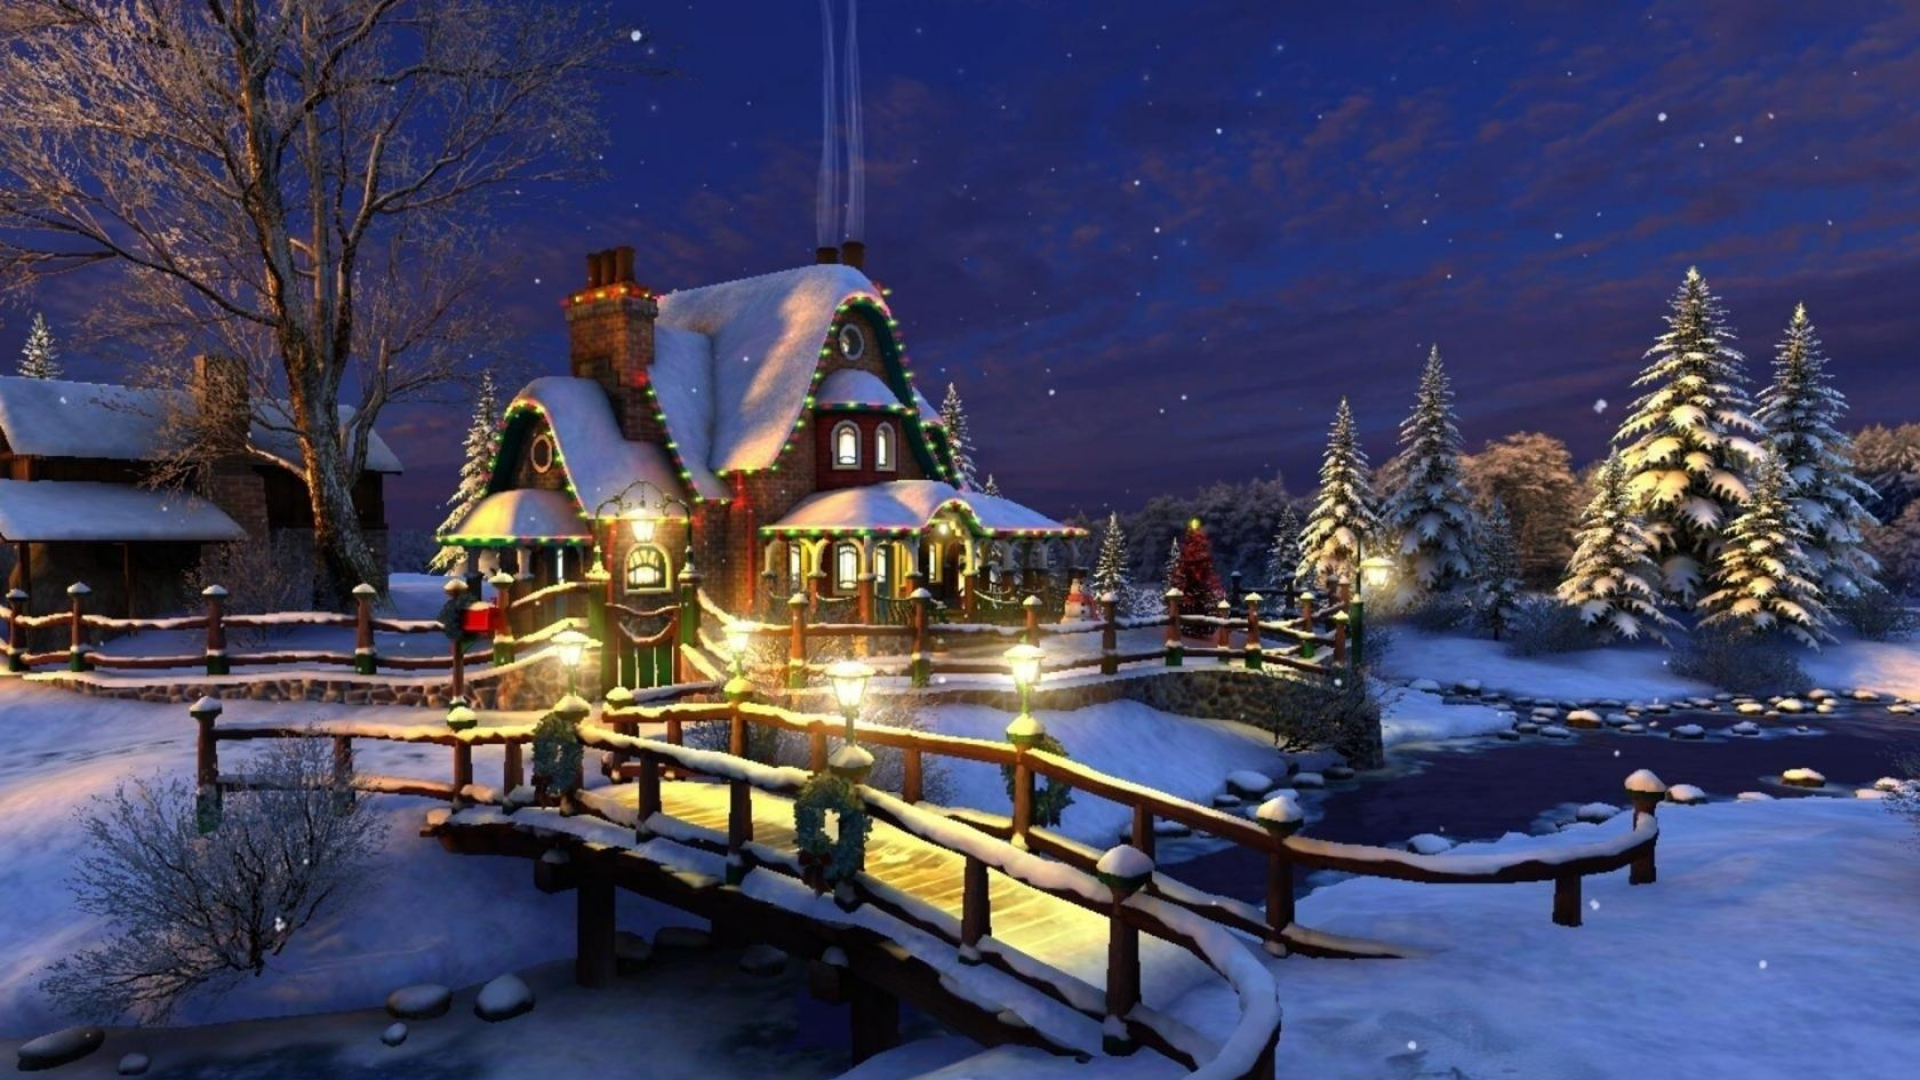 Great Wallpaper Night House - house_night_trees_snow_river_bridge_68909_1920x1080  Best Photo Reference-816325.jpg